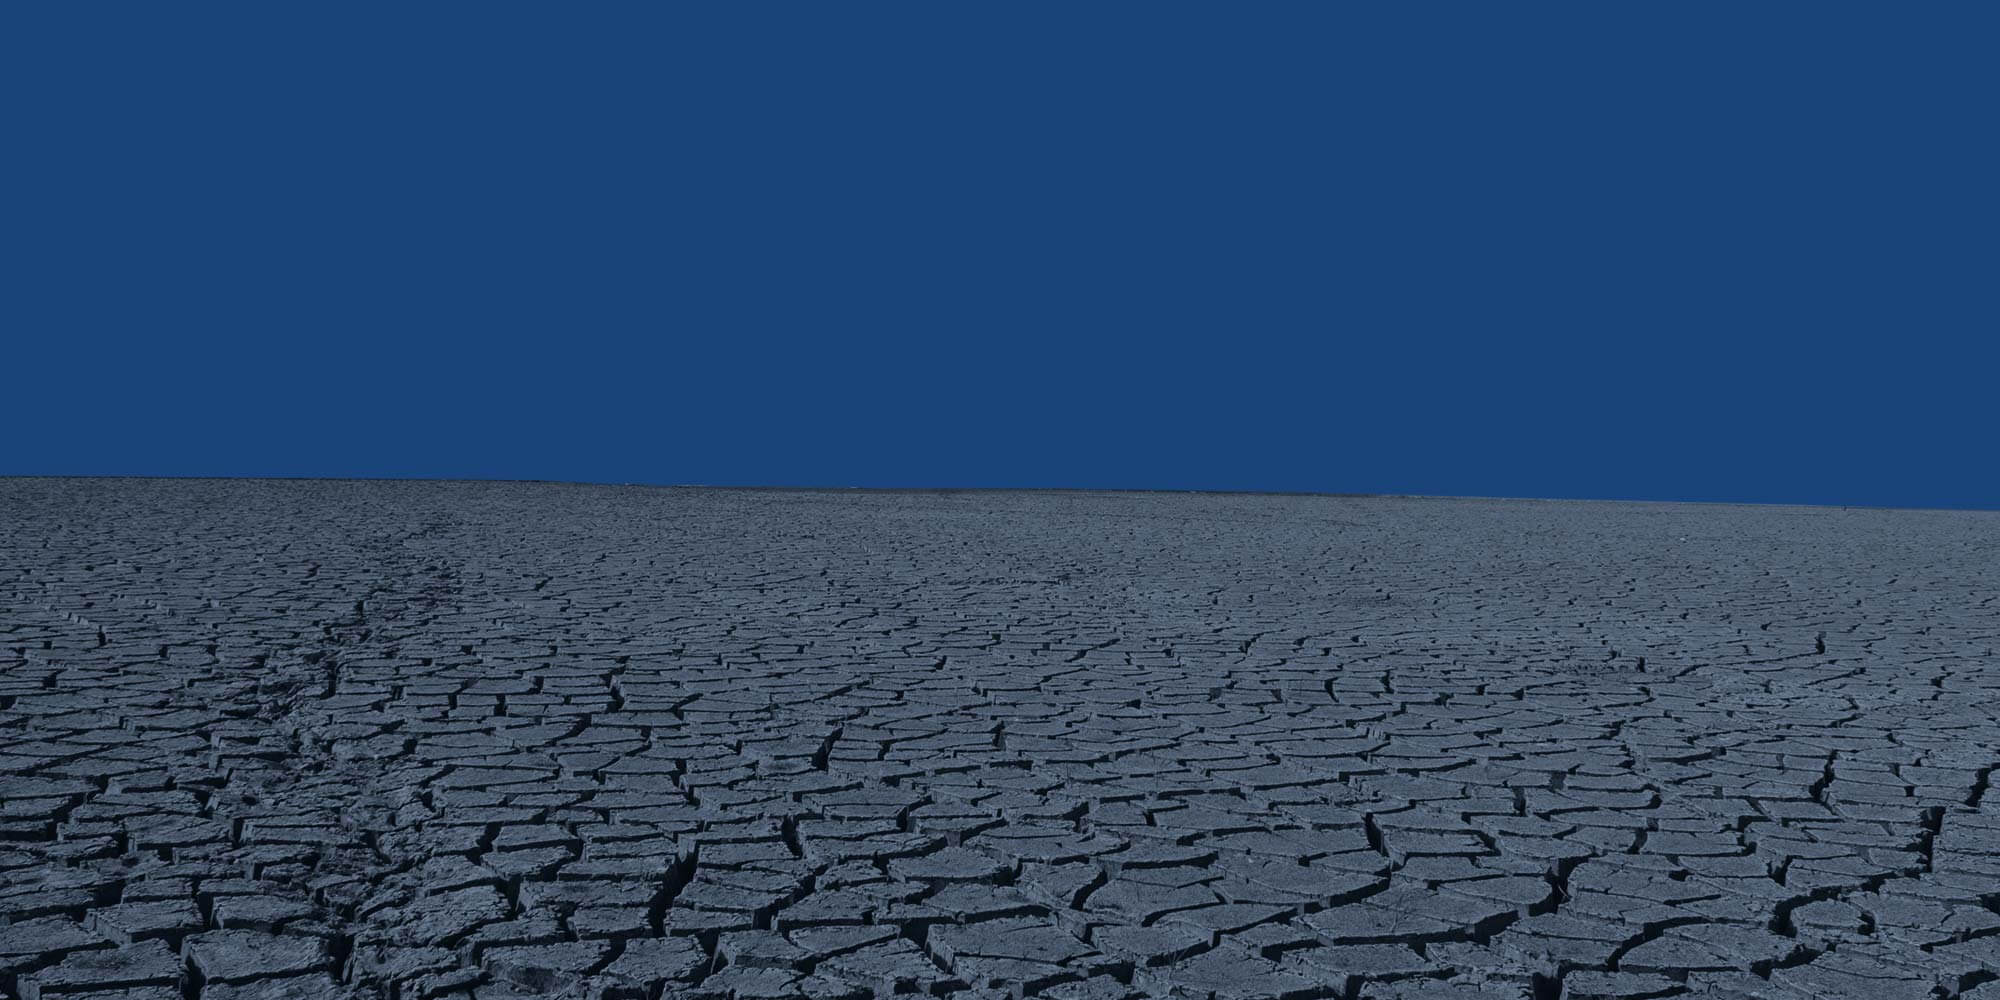 Dry, cracked earth of an empty river bed. Intermittent reinforcement.